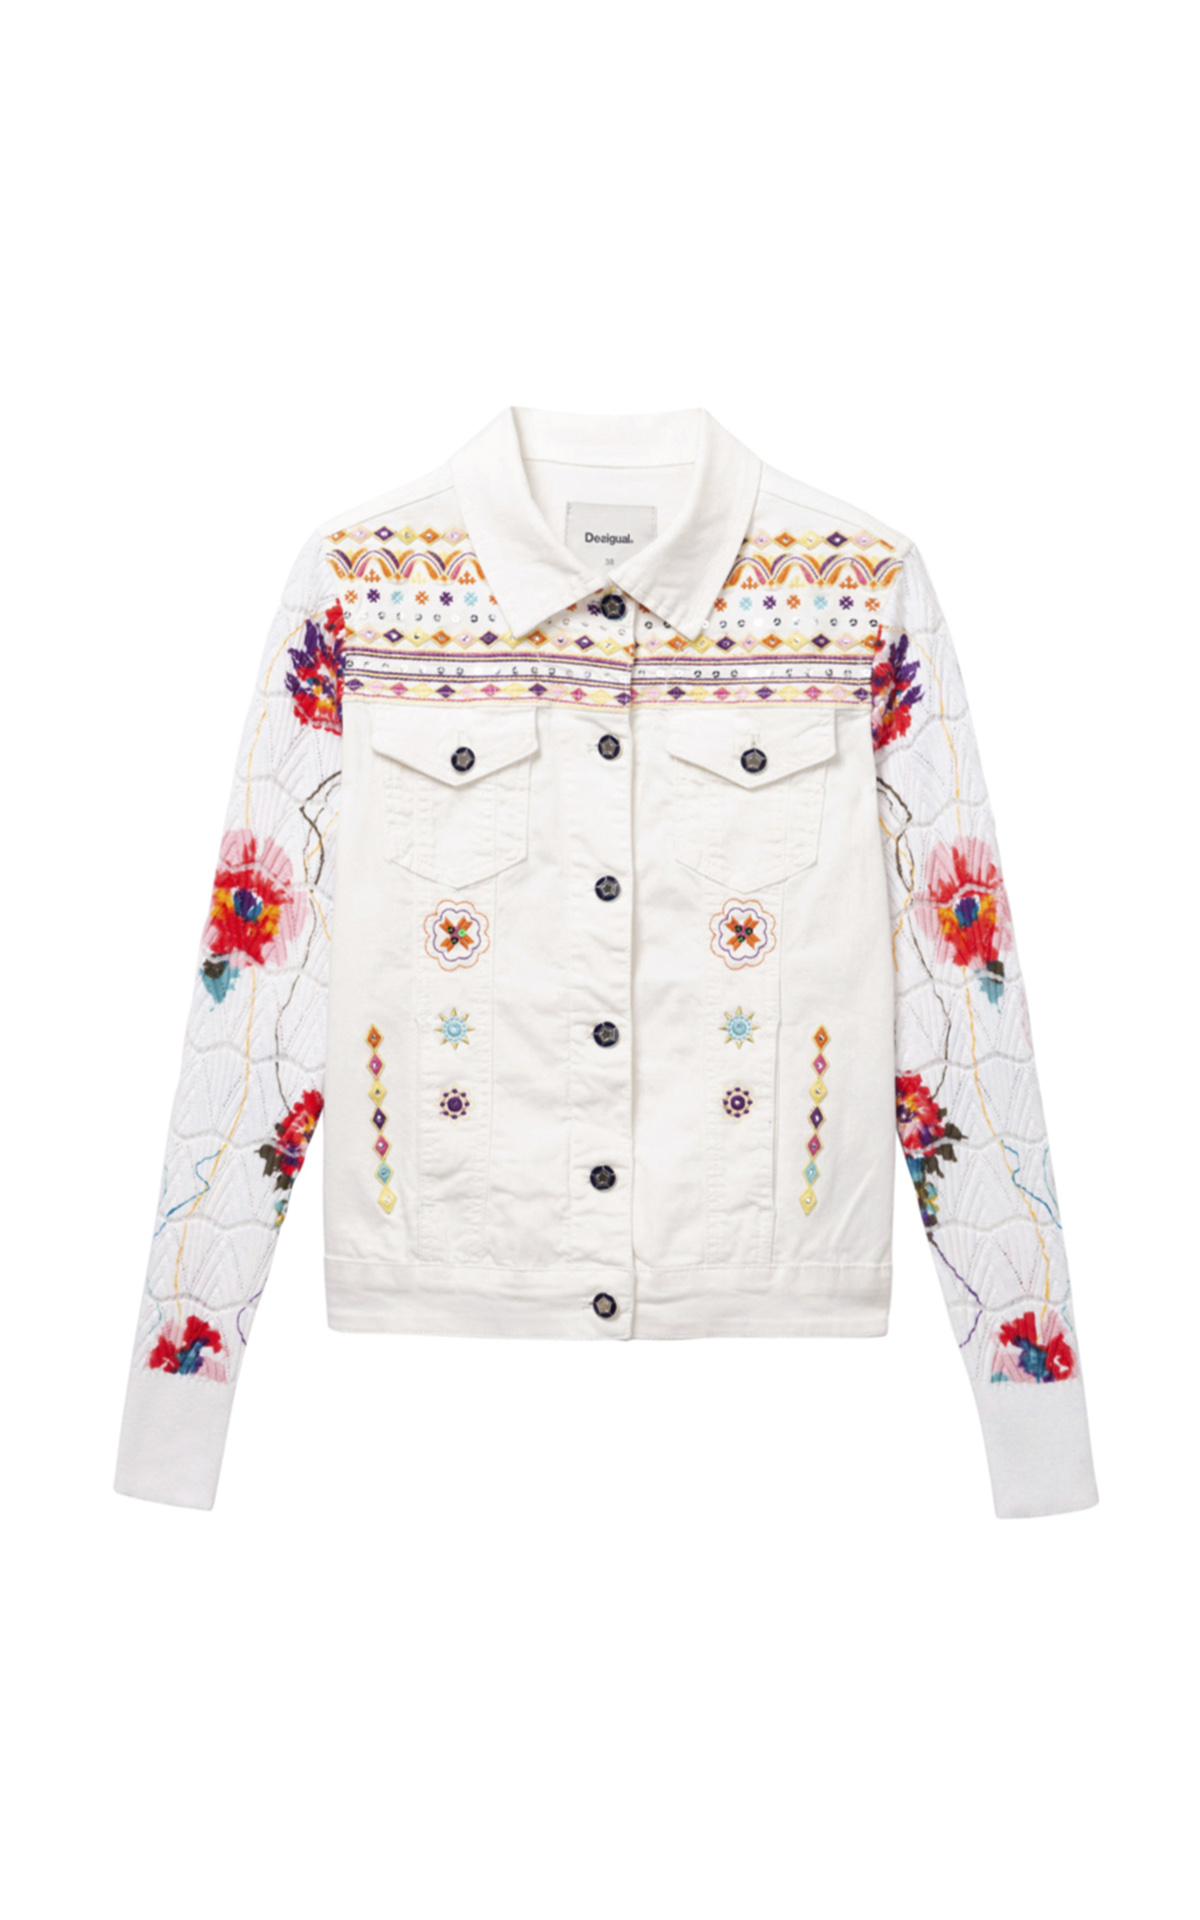 White women's denim jacket with flowers Desigual